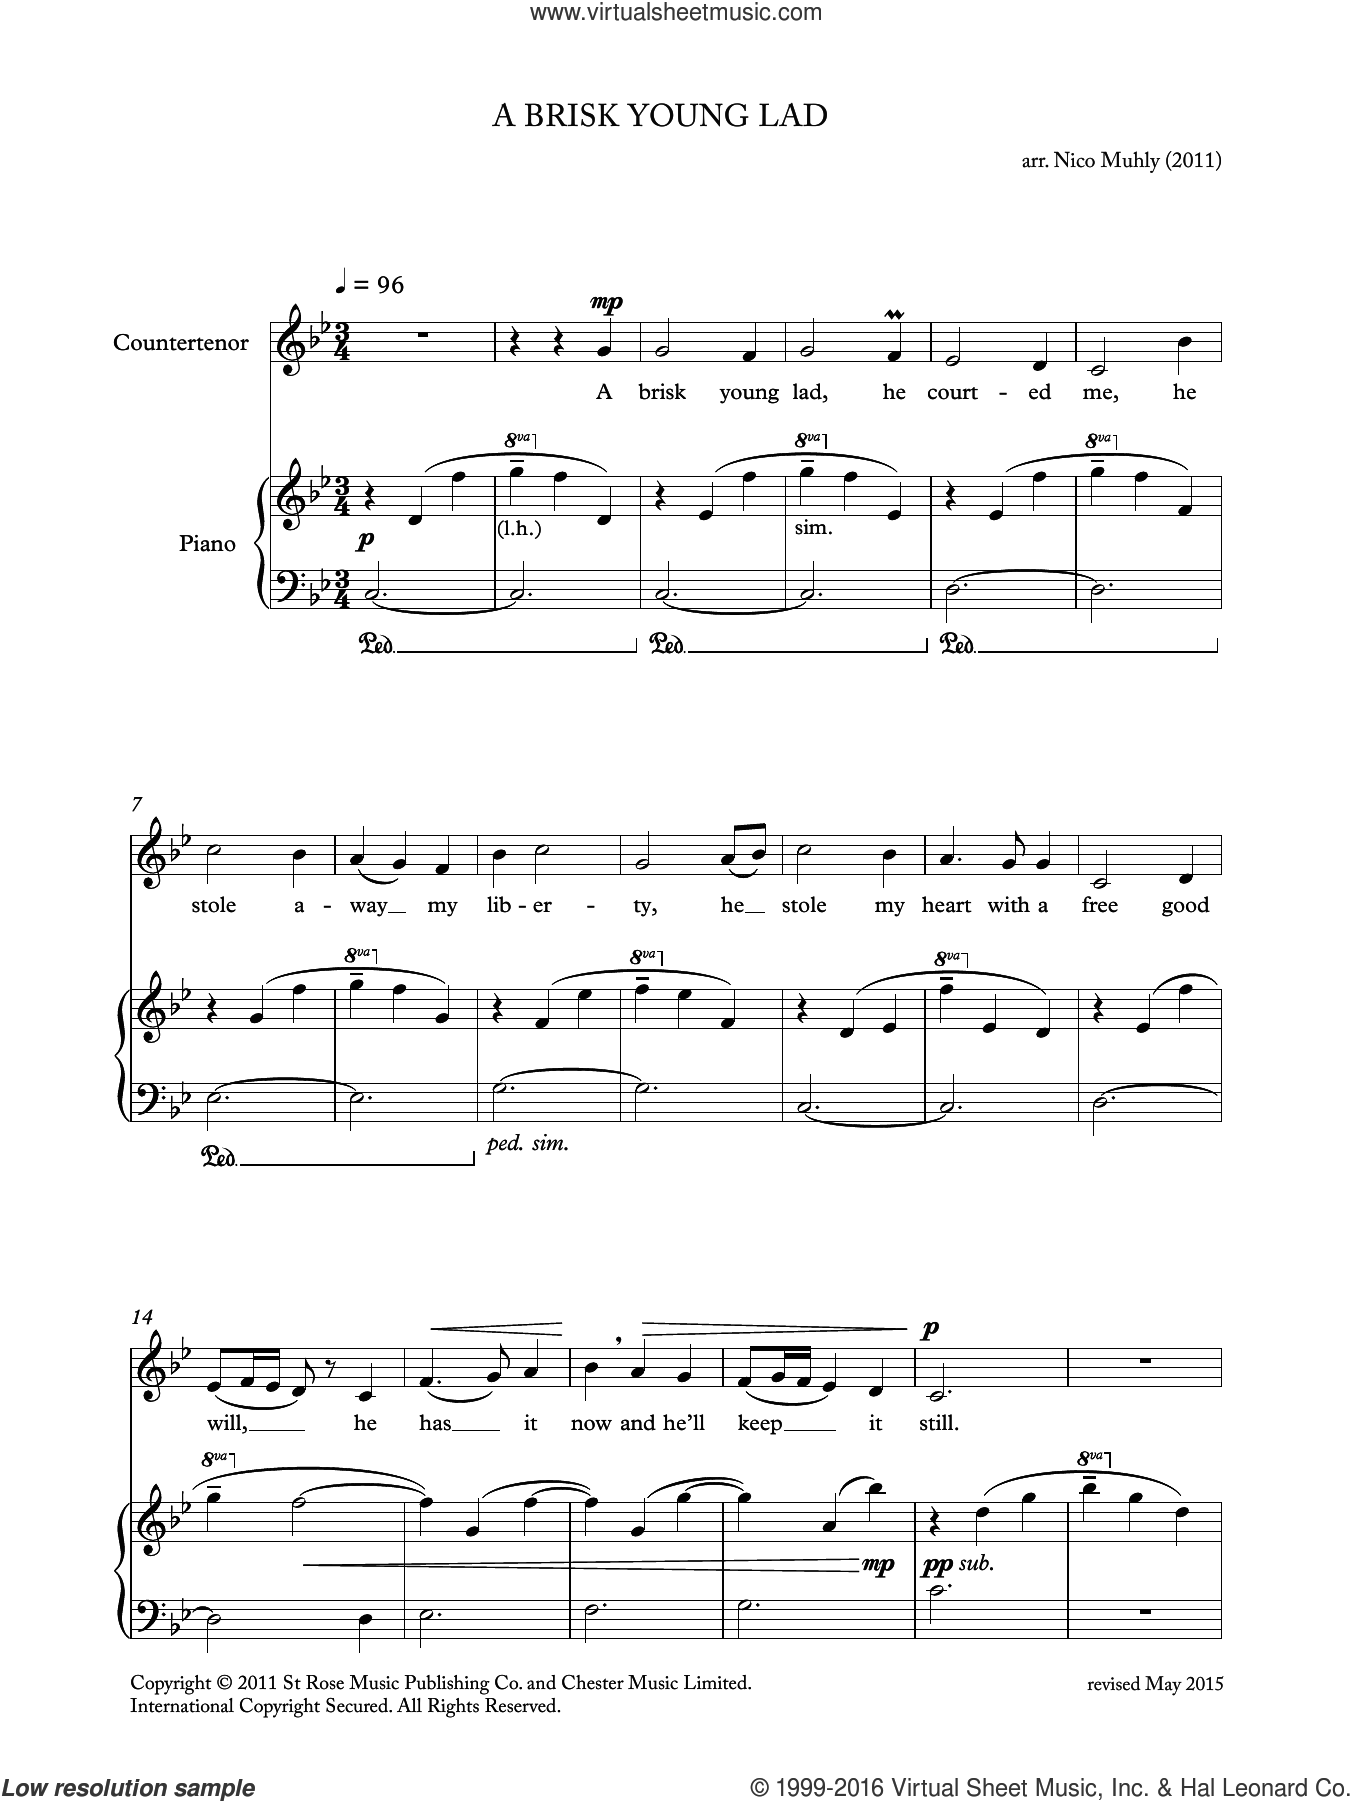 A Brisk Young Lad (from 'Four Traditional Songs') sheet music for voice, piano or guitar by Nico Muhly, classical score, intermediate skill level